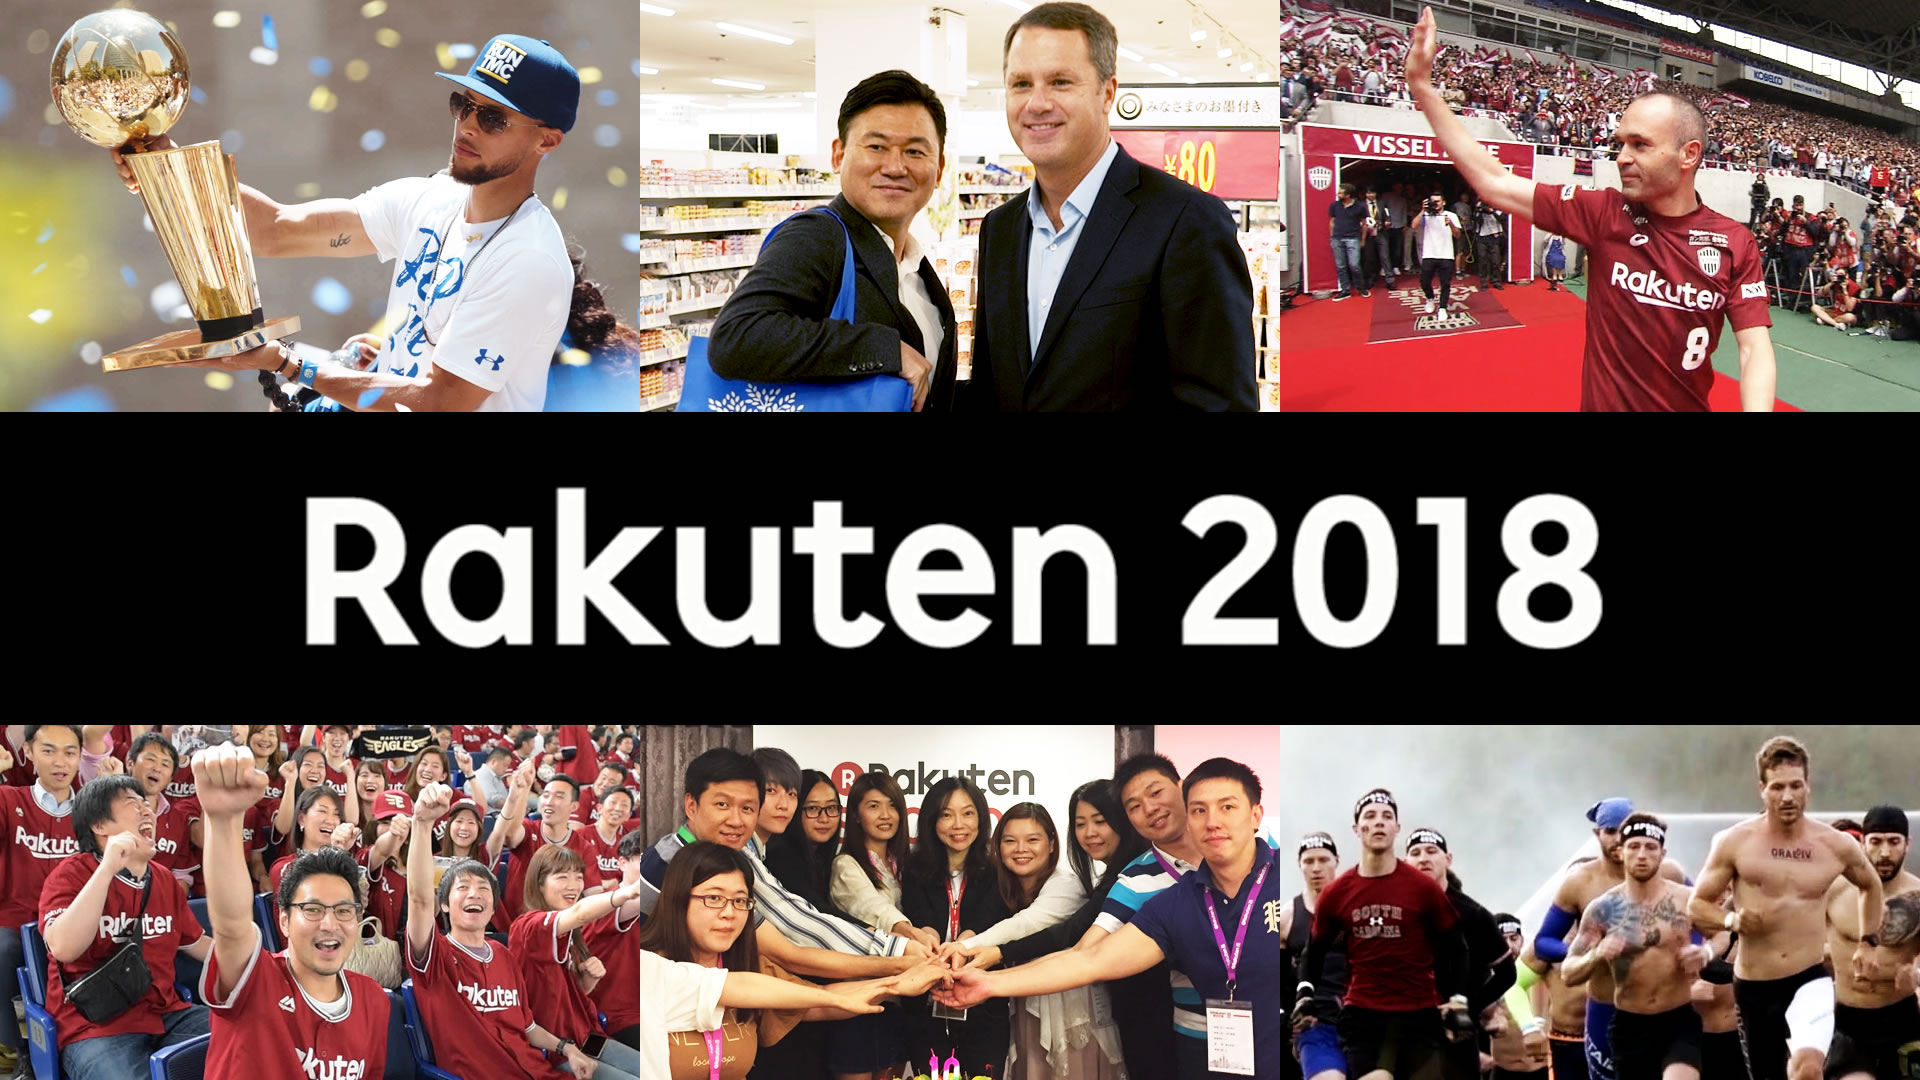 Highlights of Rakuten's 2018